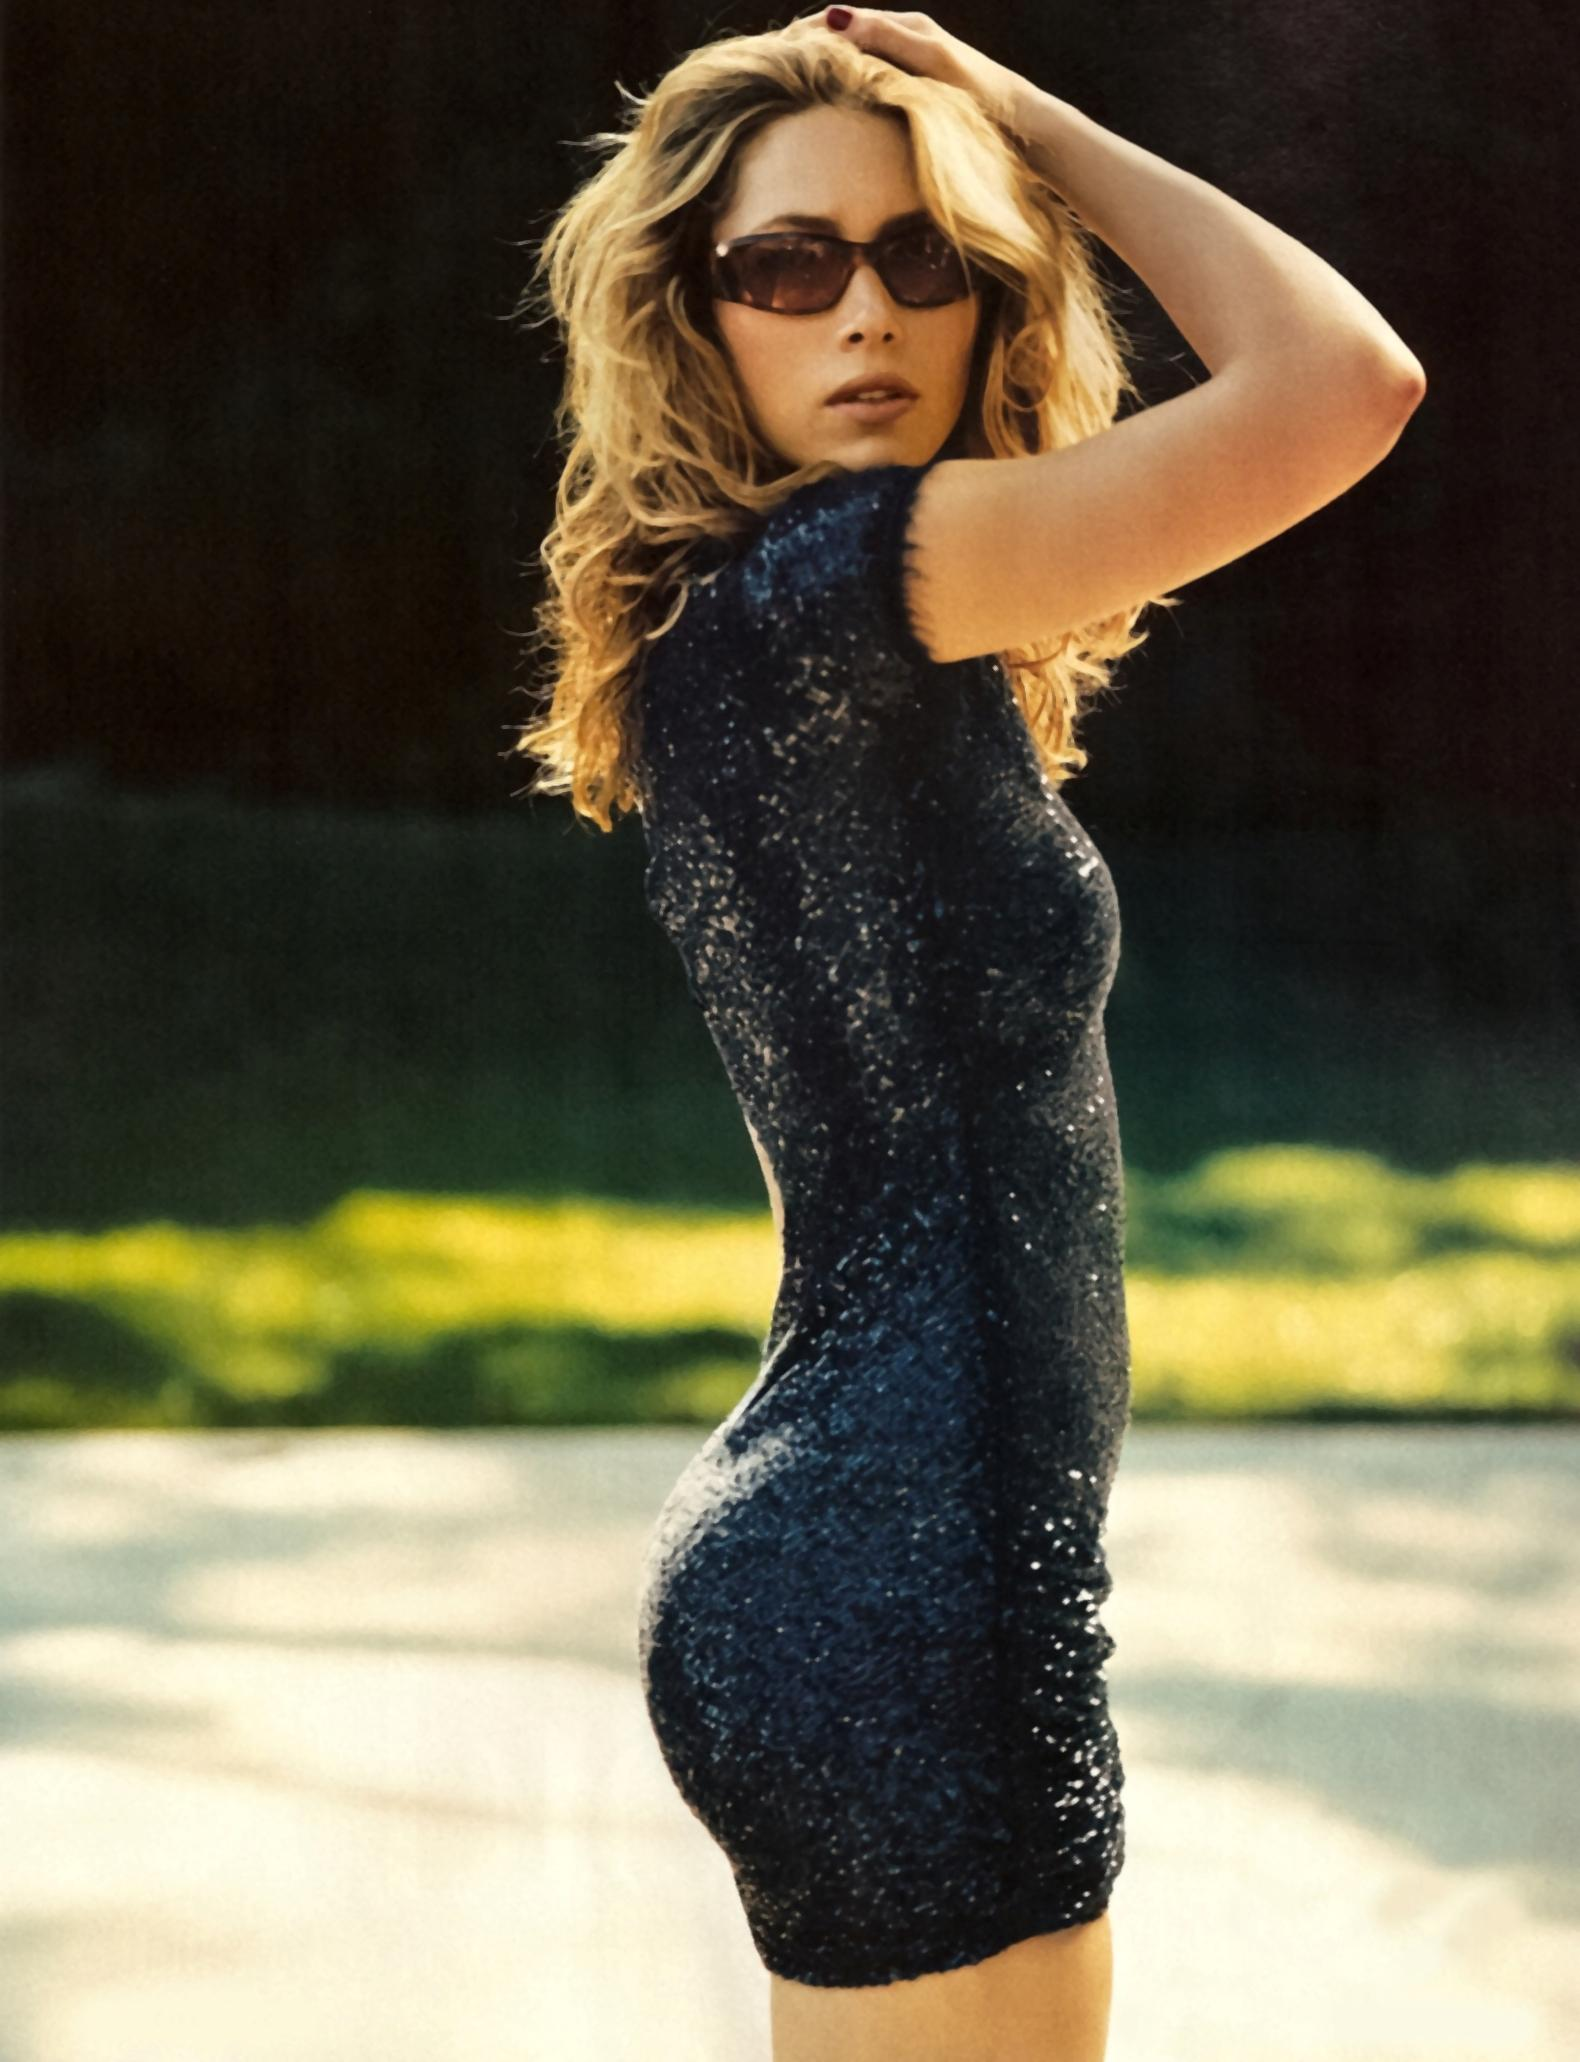 Jessica Biel on Photoshoot